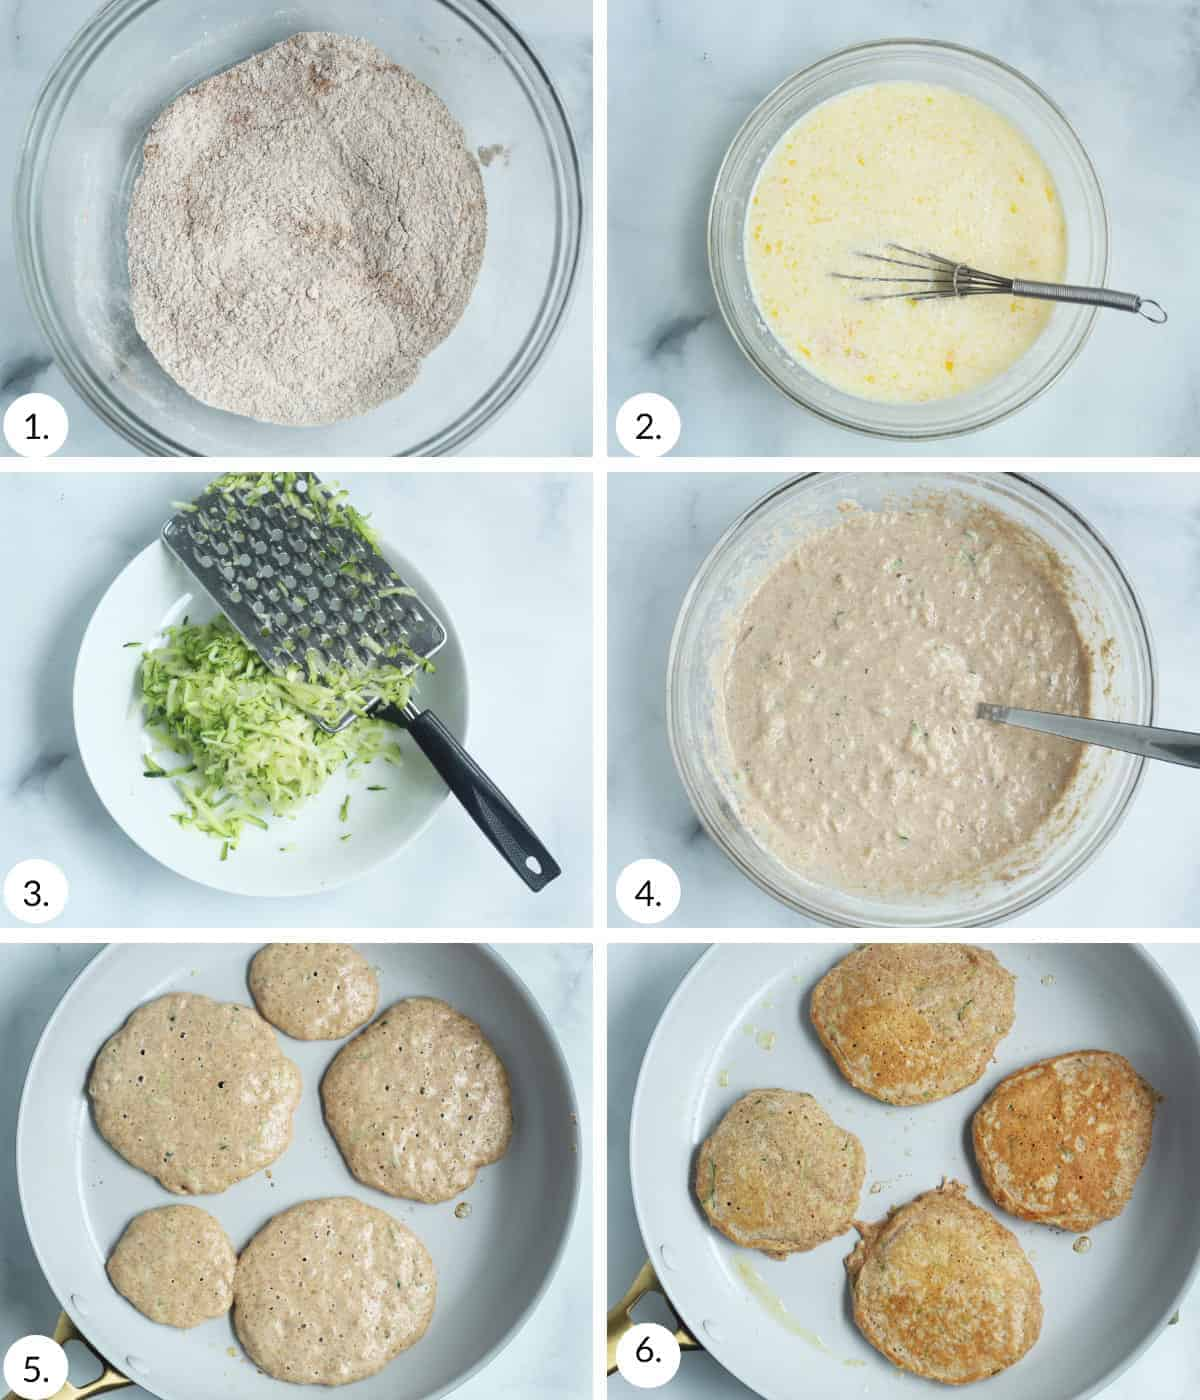 how-to-make-zucchini-pancakes-step-by-step